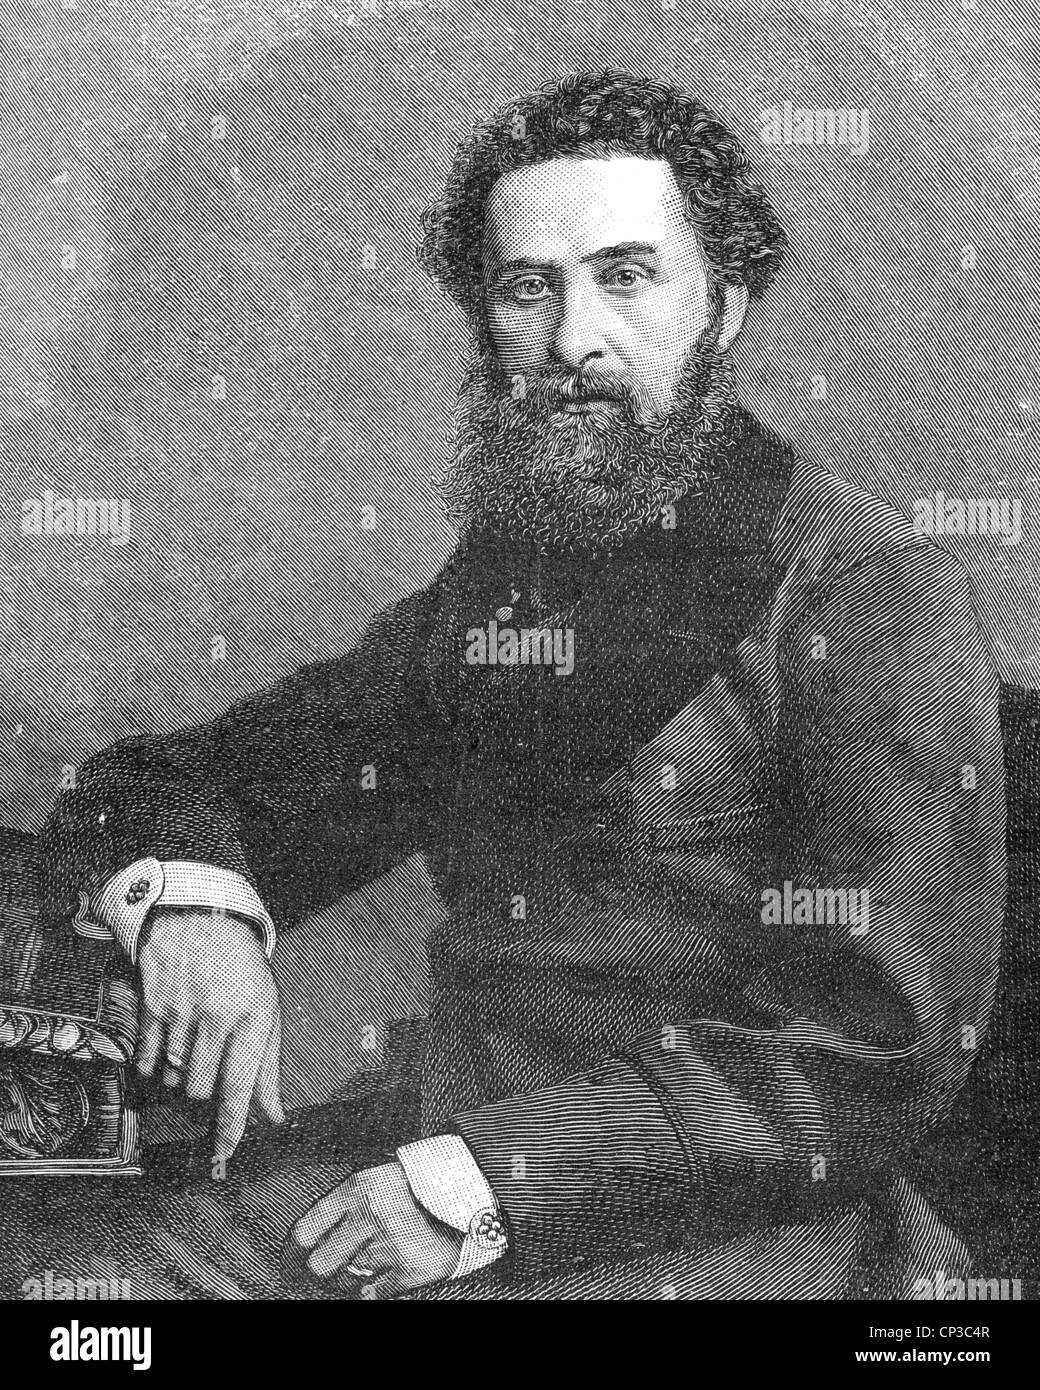 ROBERT BULWER-LYTON, 1st Earl of Lytton (1831-1891) English poet, statesman and Viceroy of India 1876-80 - Stock Image